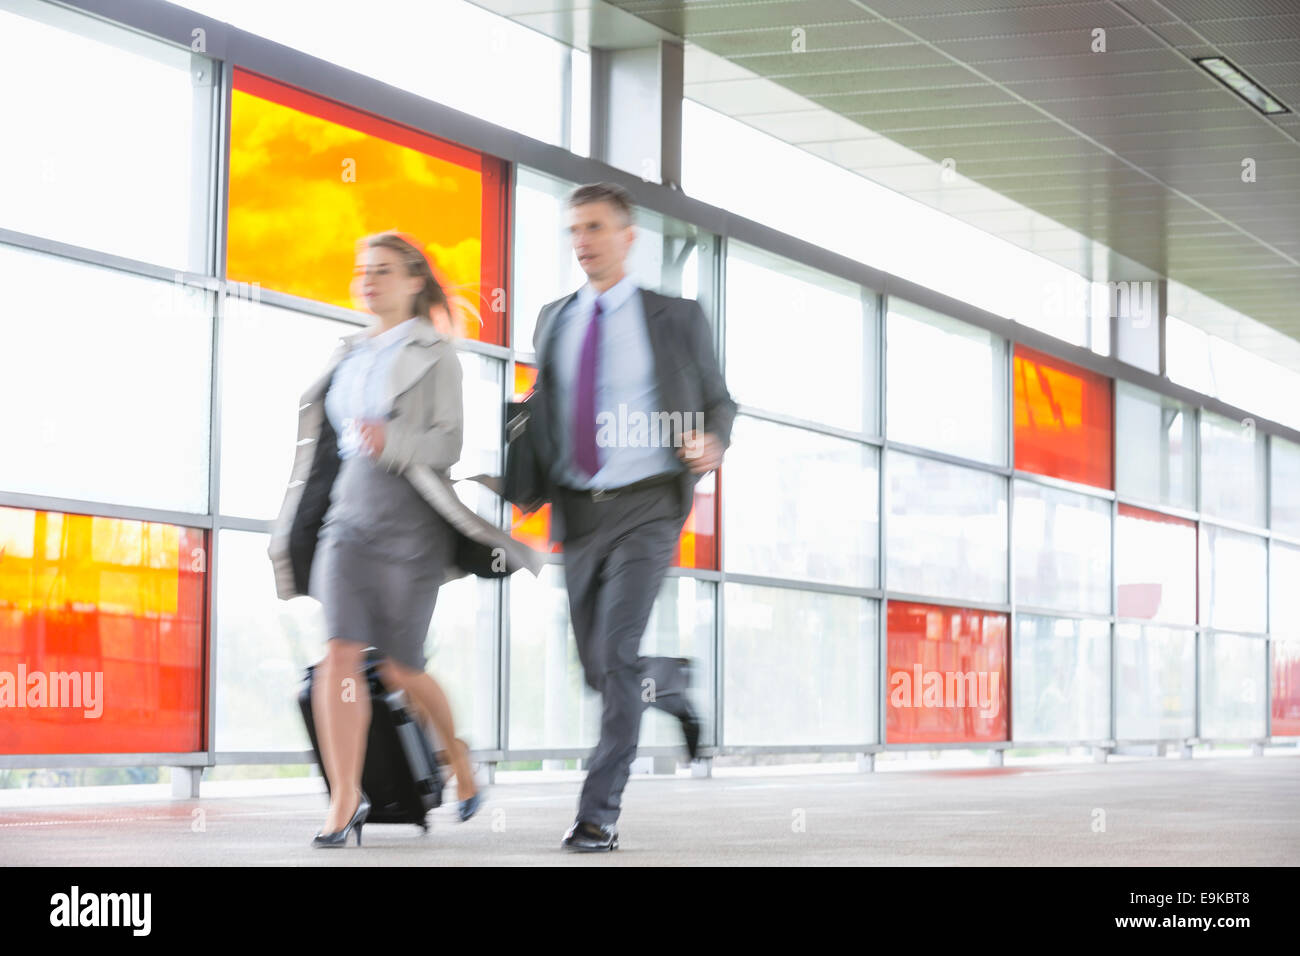 Businessman and businesswoman rushing in railroad station - Stock Image